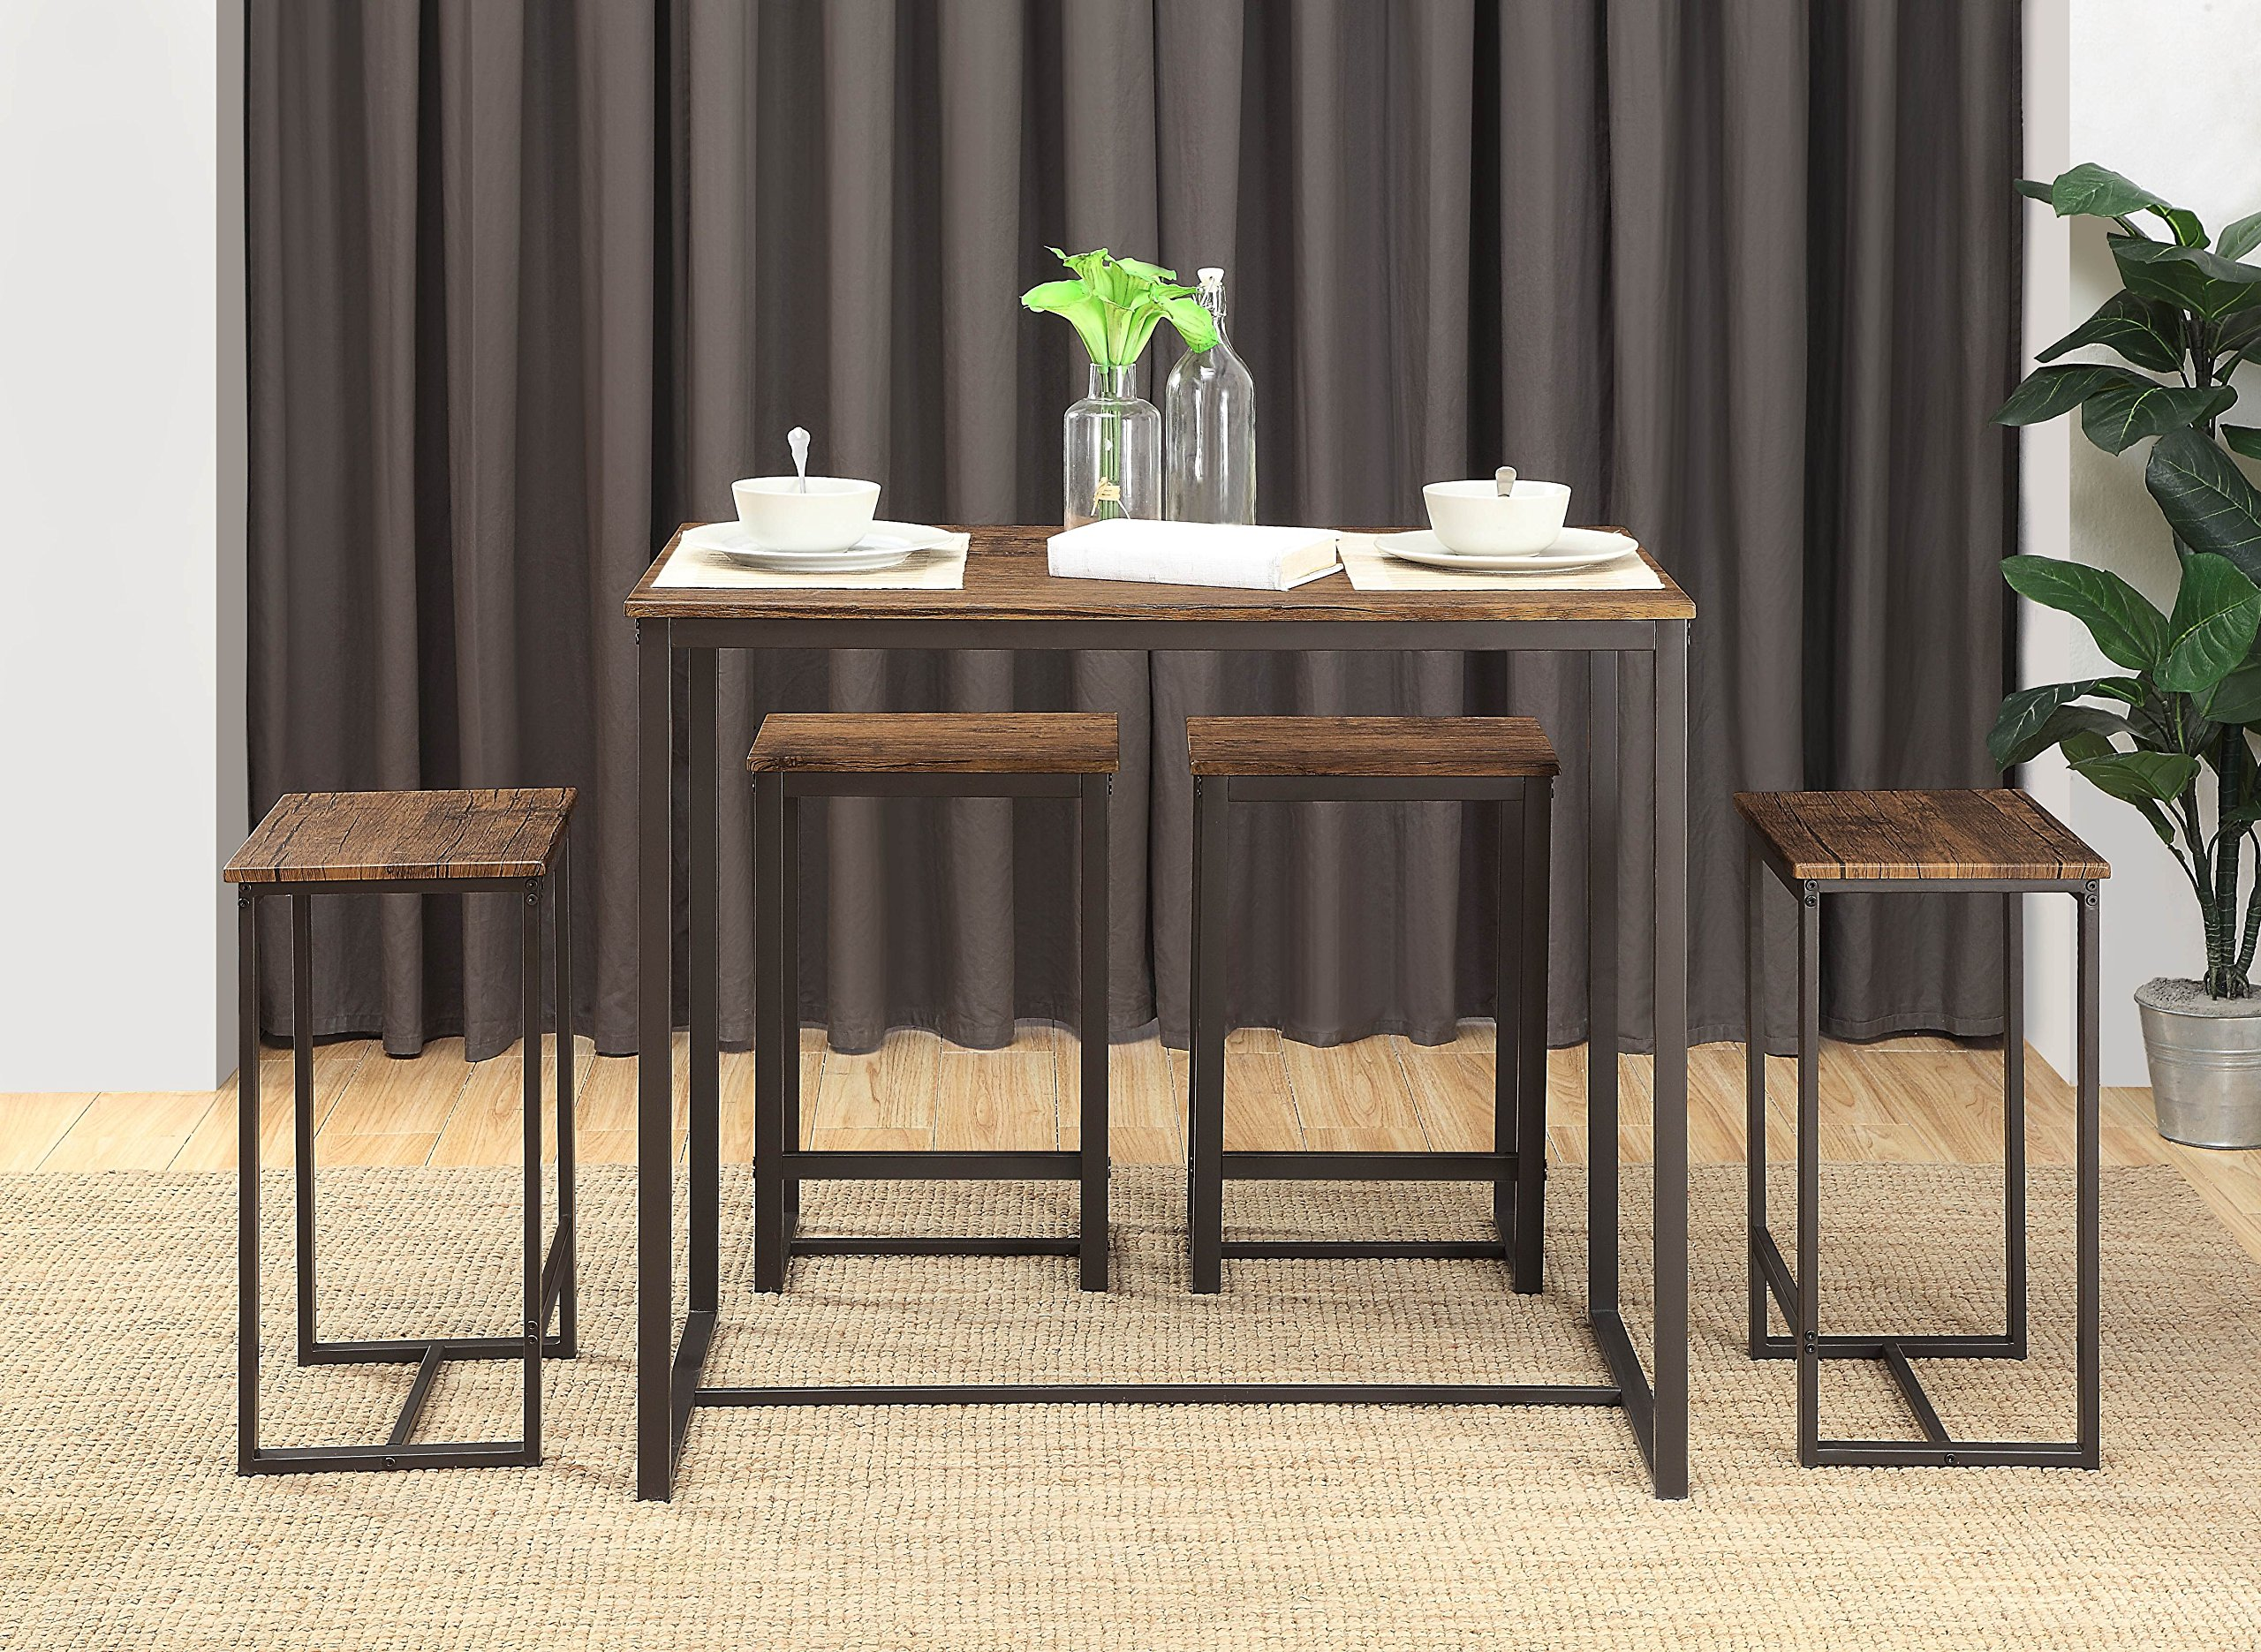 Abington Lane Kitchen Table Set - Versatile, Tall, Modern Table Set for Any Room or Occasion (4 Stools) by Abington Lane (Image #2)